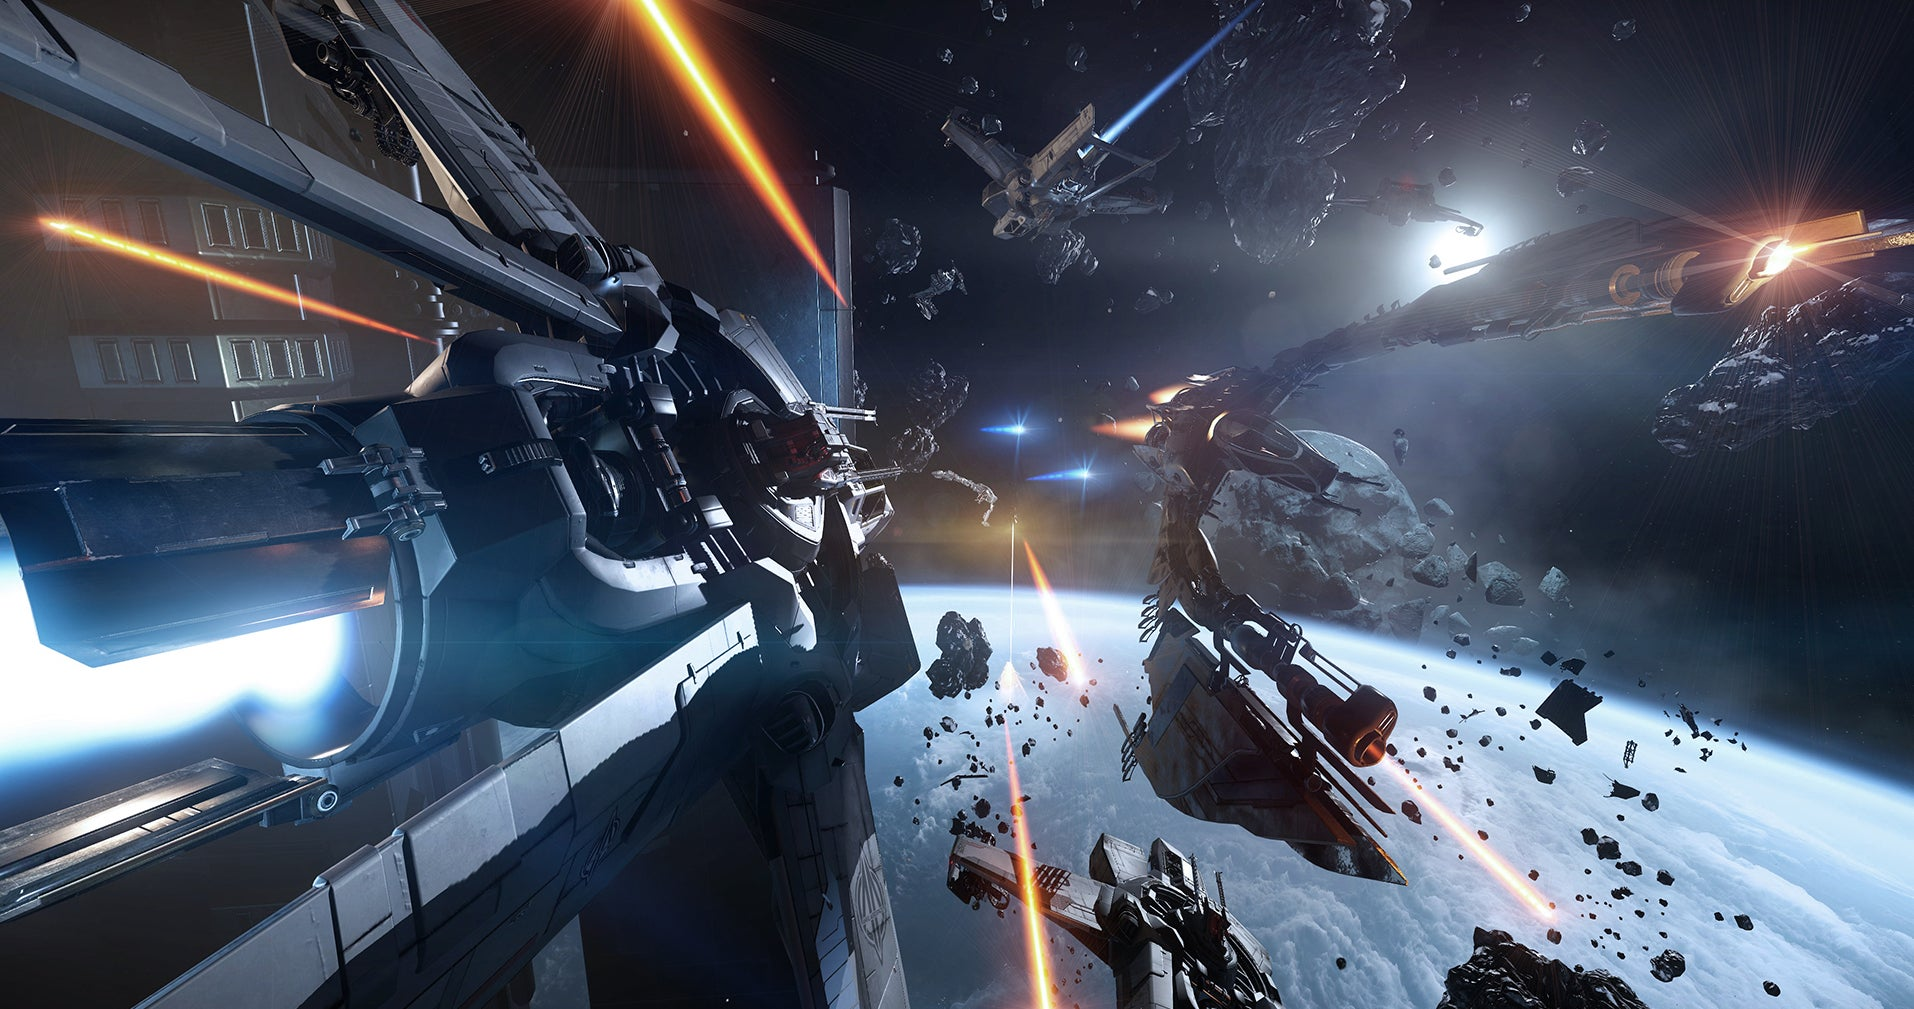 Crytek sues Star Citizen developer CIG alleging breach of contract